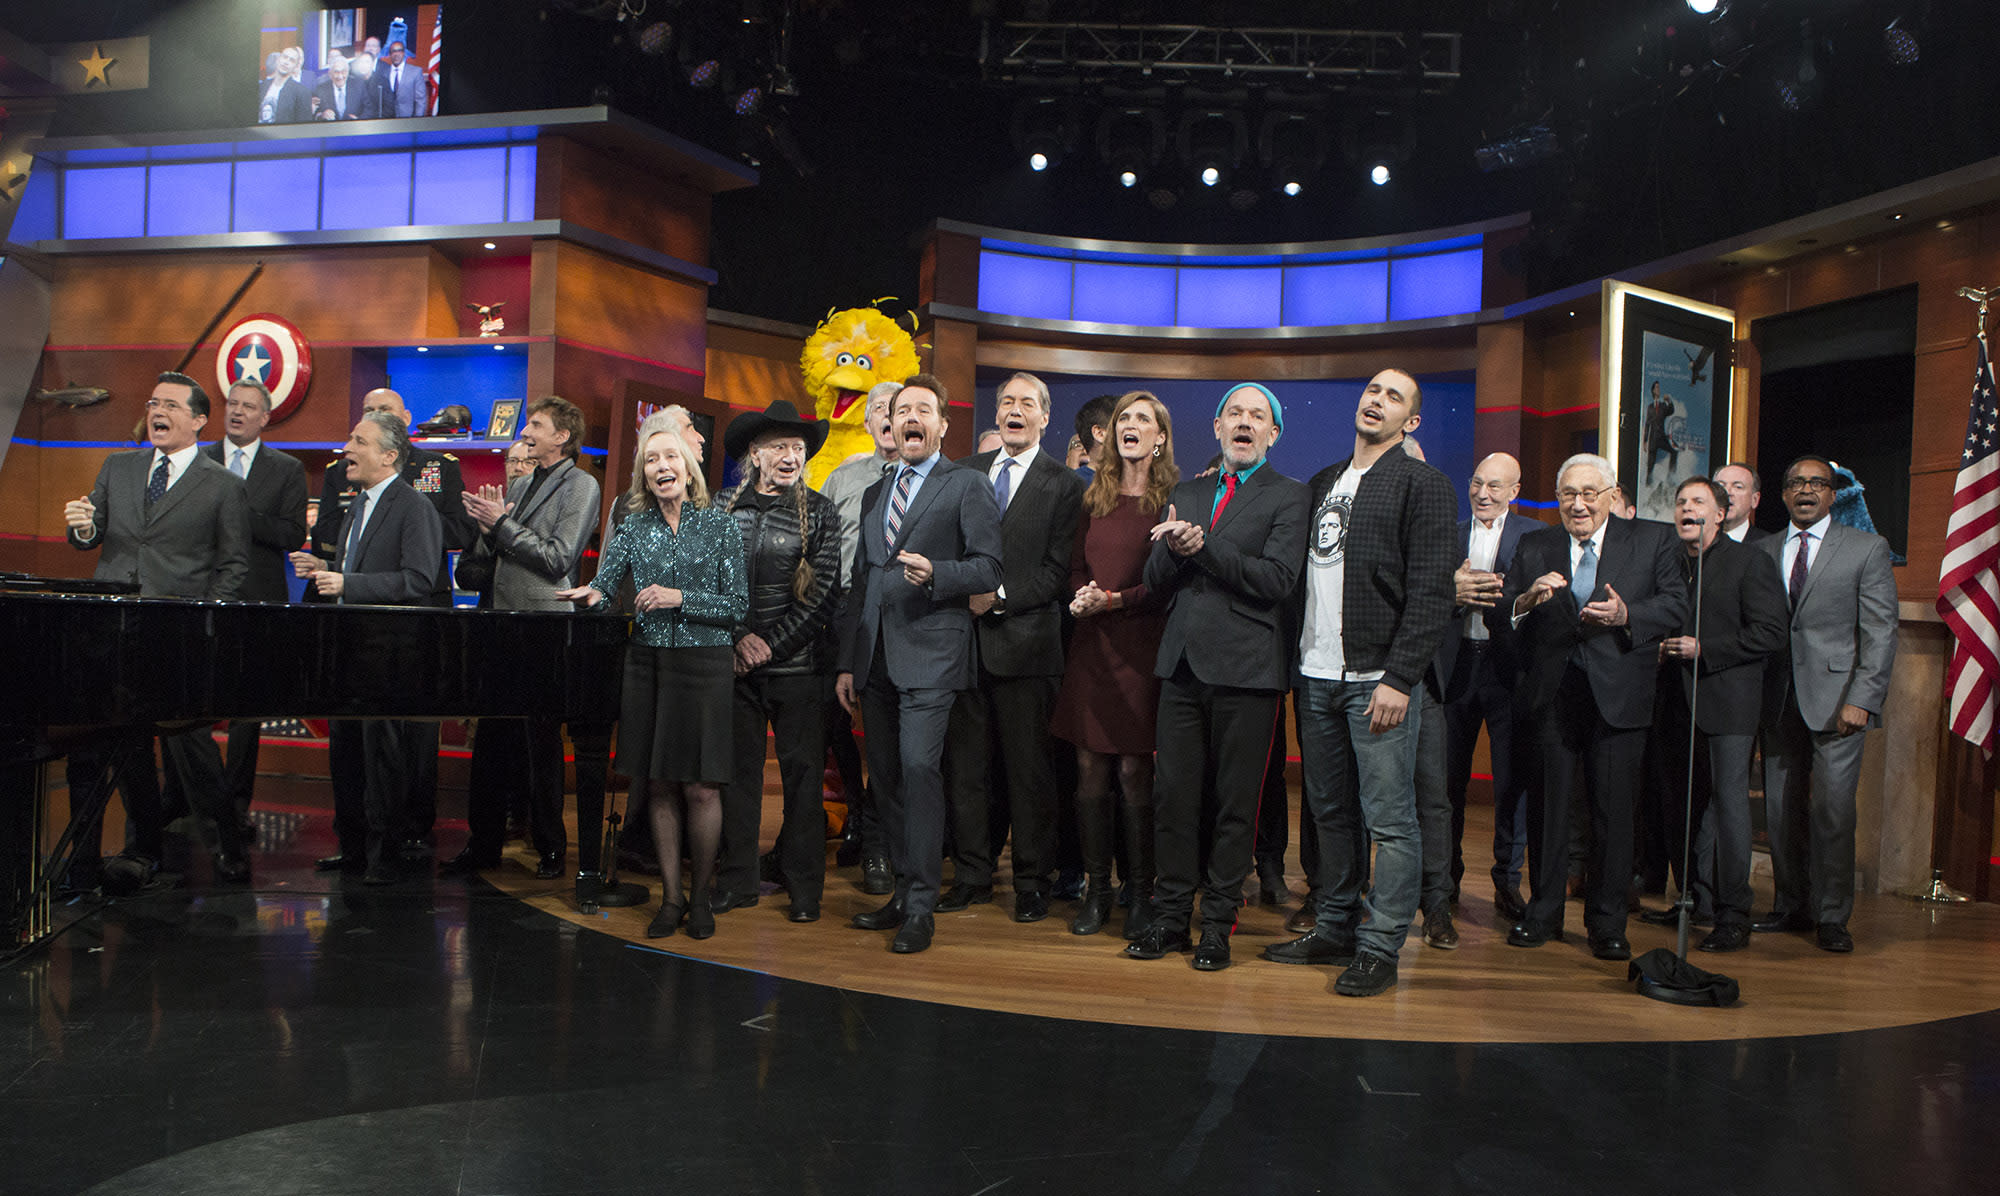 WATCH: Stephen Colbert Immortalized With Star-Studded Finale